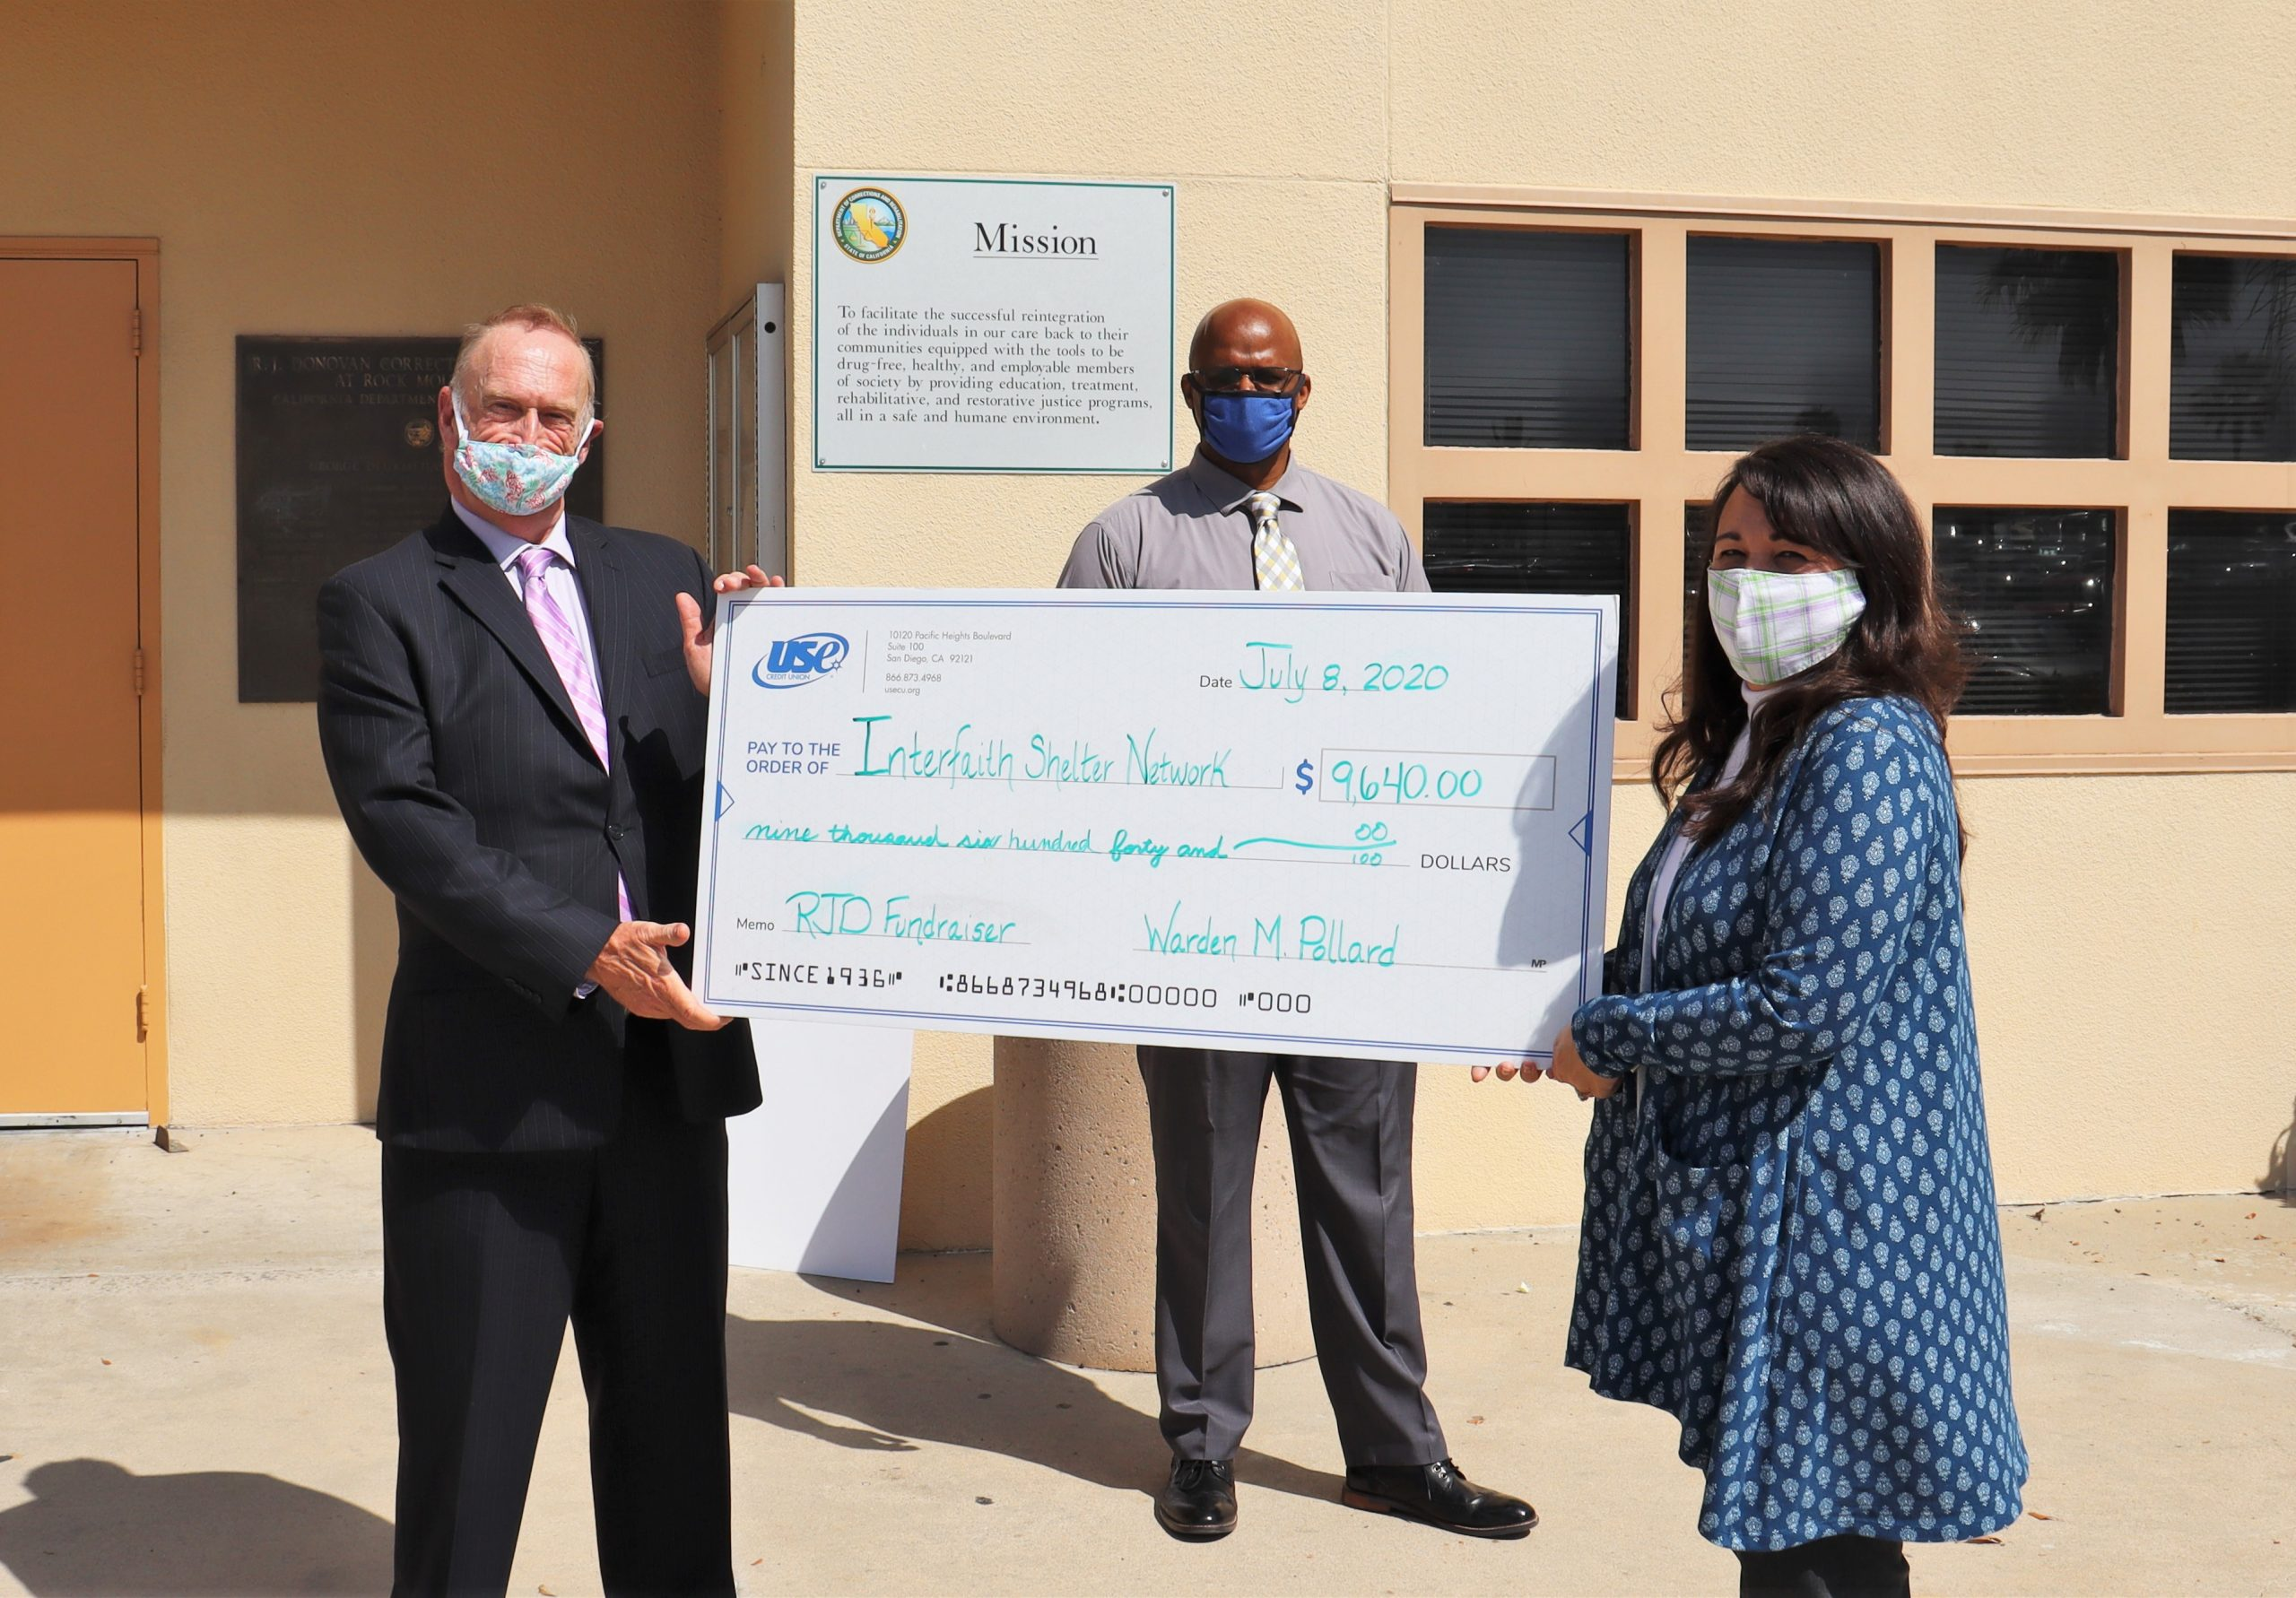 A large over-sized check is presented to a charity. Shown are two men and one woman, all wearing face coverings.